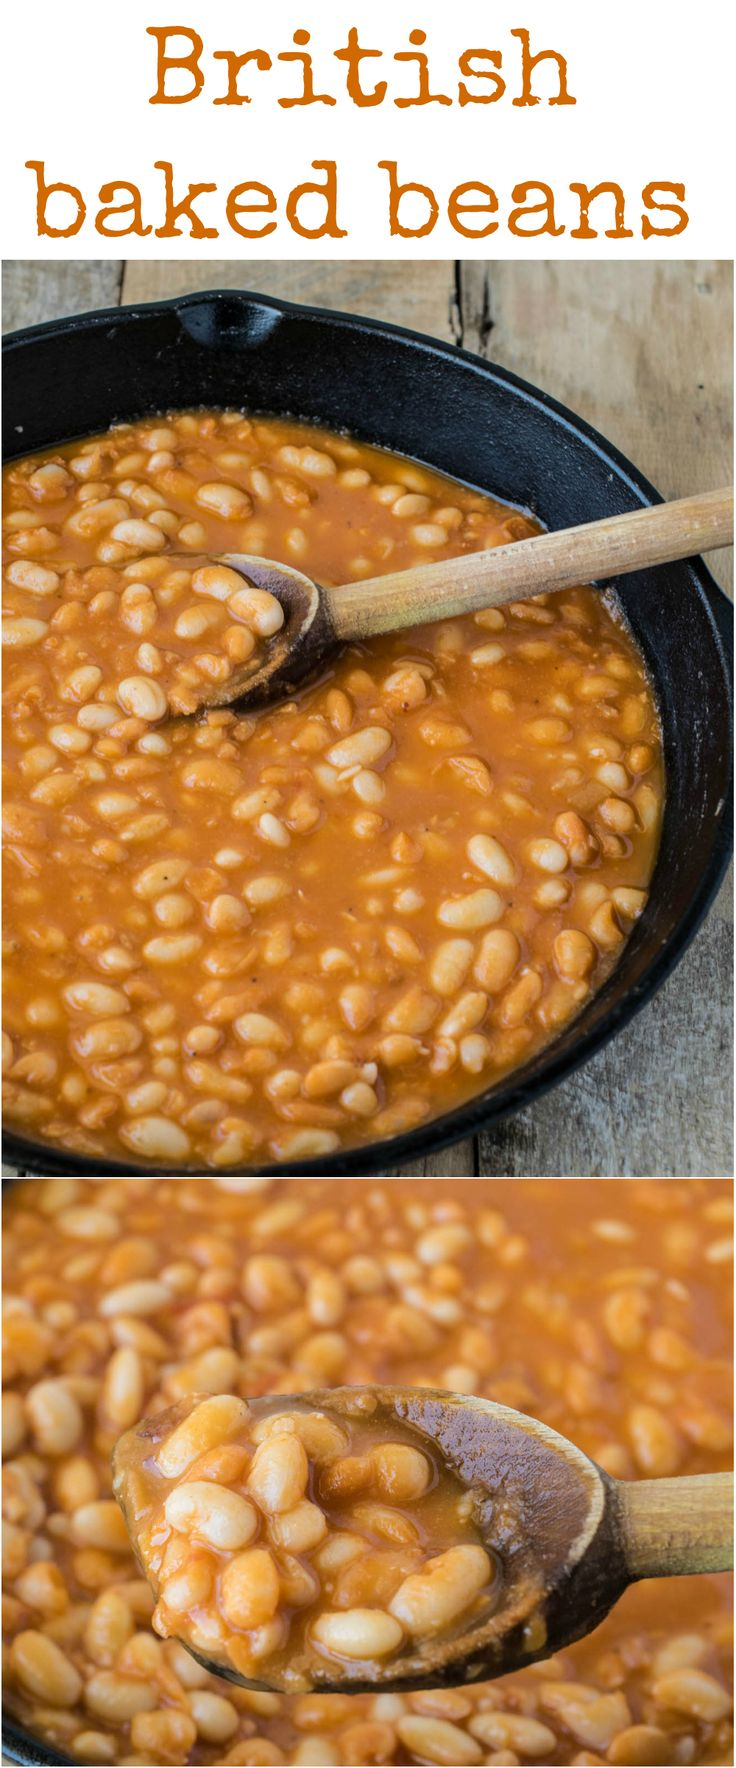 British baked beans are just like store bought but better, because they are homemade and homemade is always best. Navy beans are cooked with vegetables and flavorings in tomato sauce for a taste of a British classic.